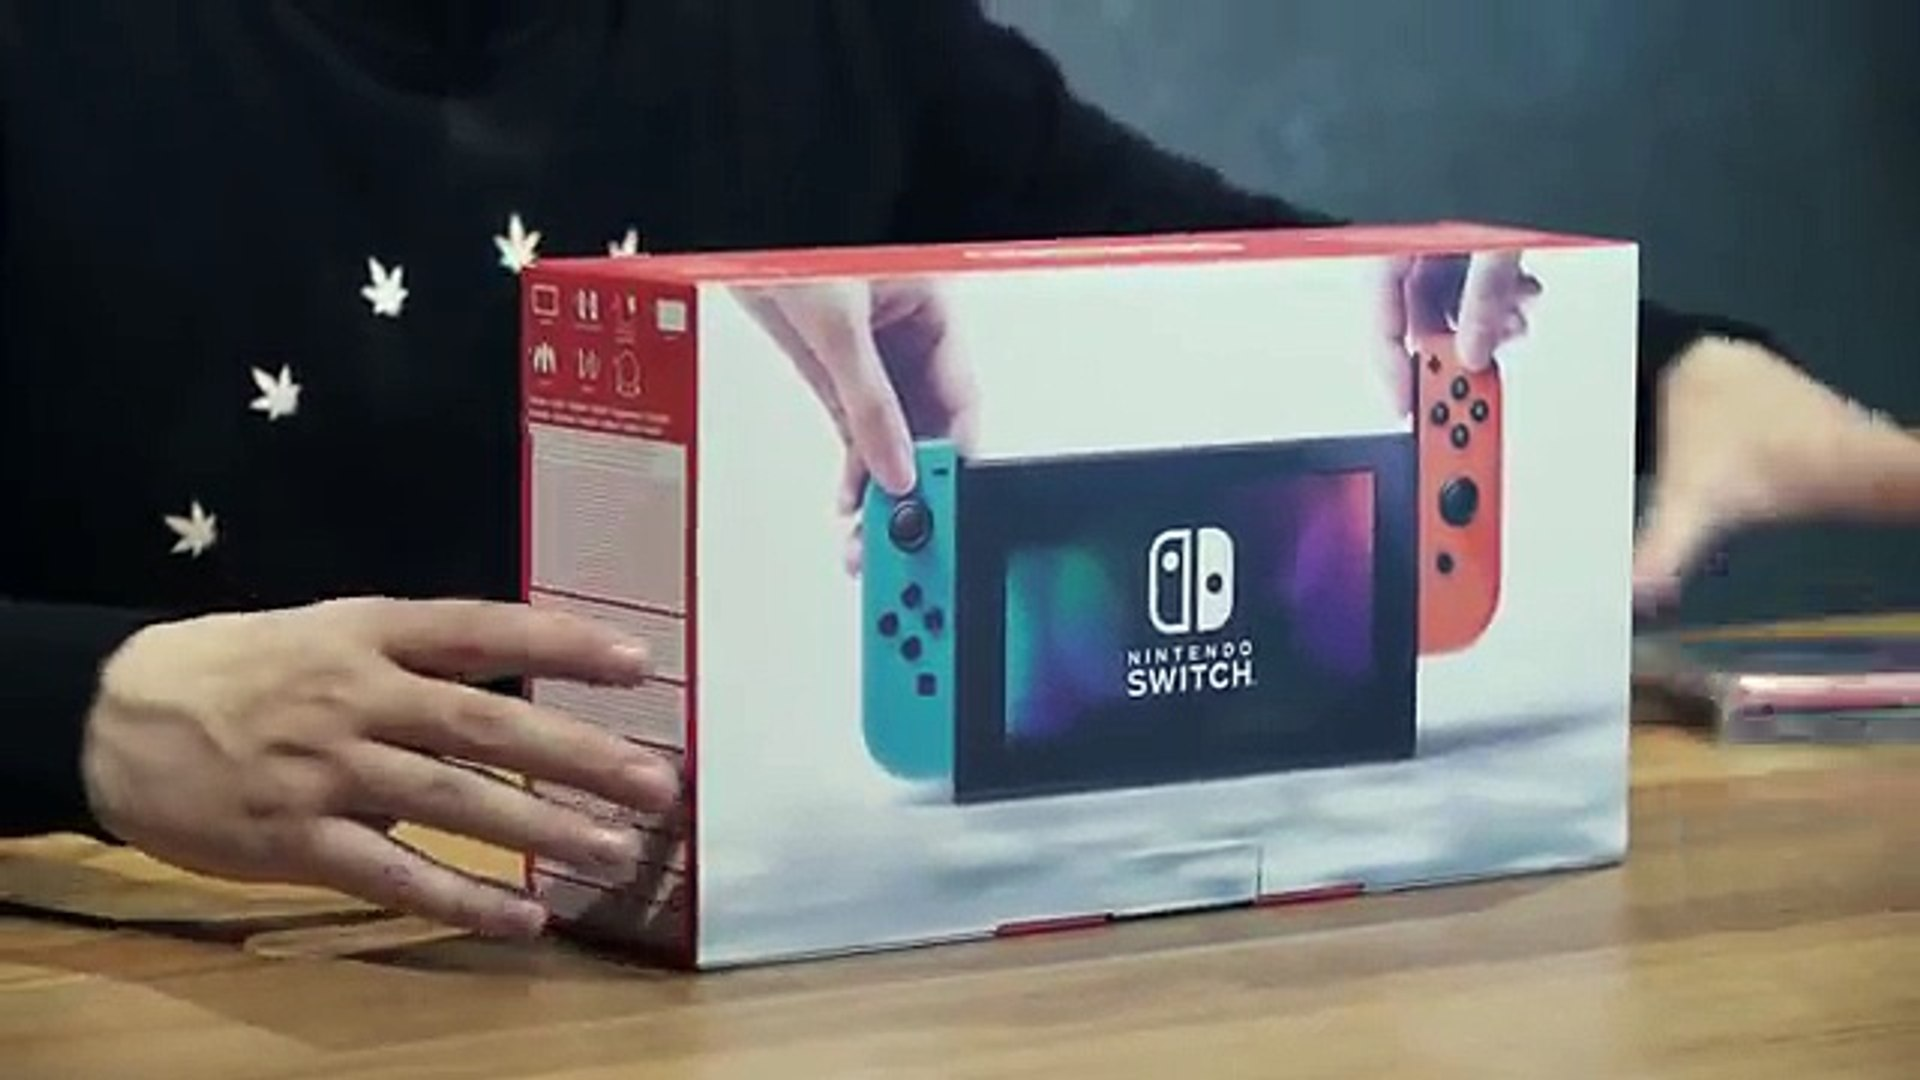 The Nintendo Switch - The Game Changer??